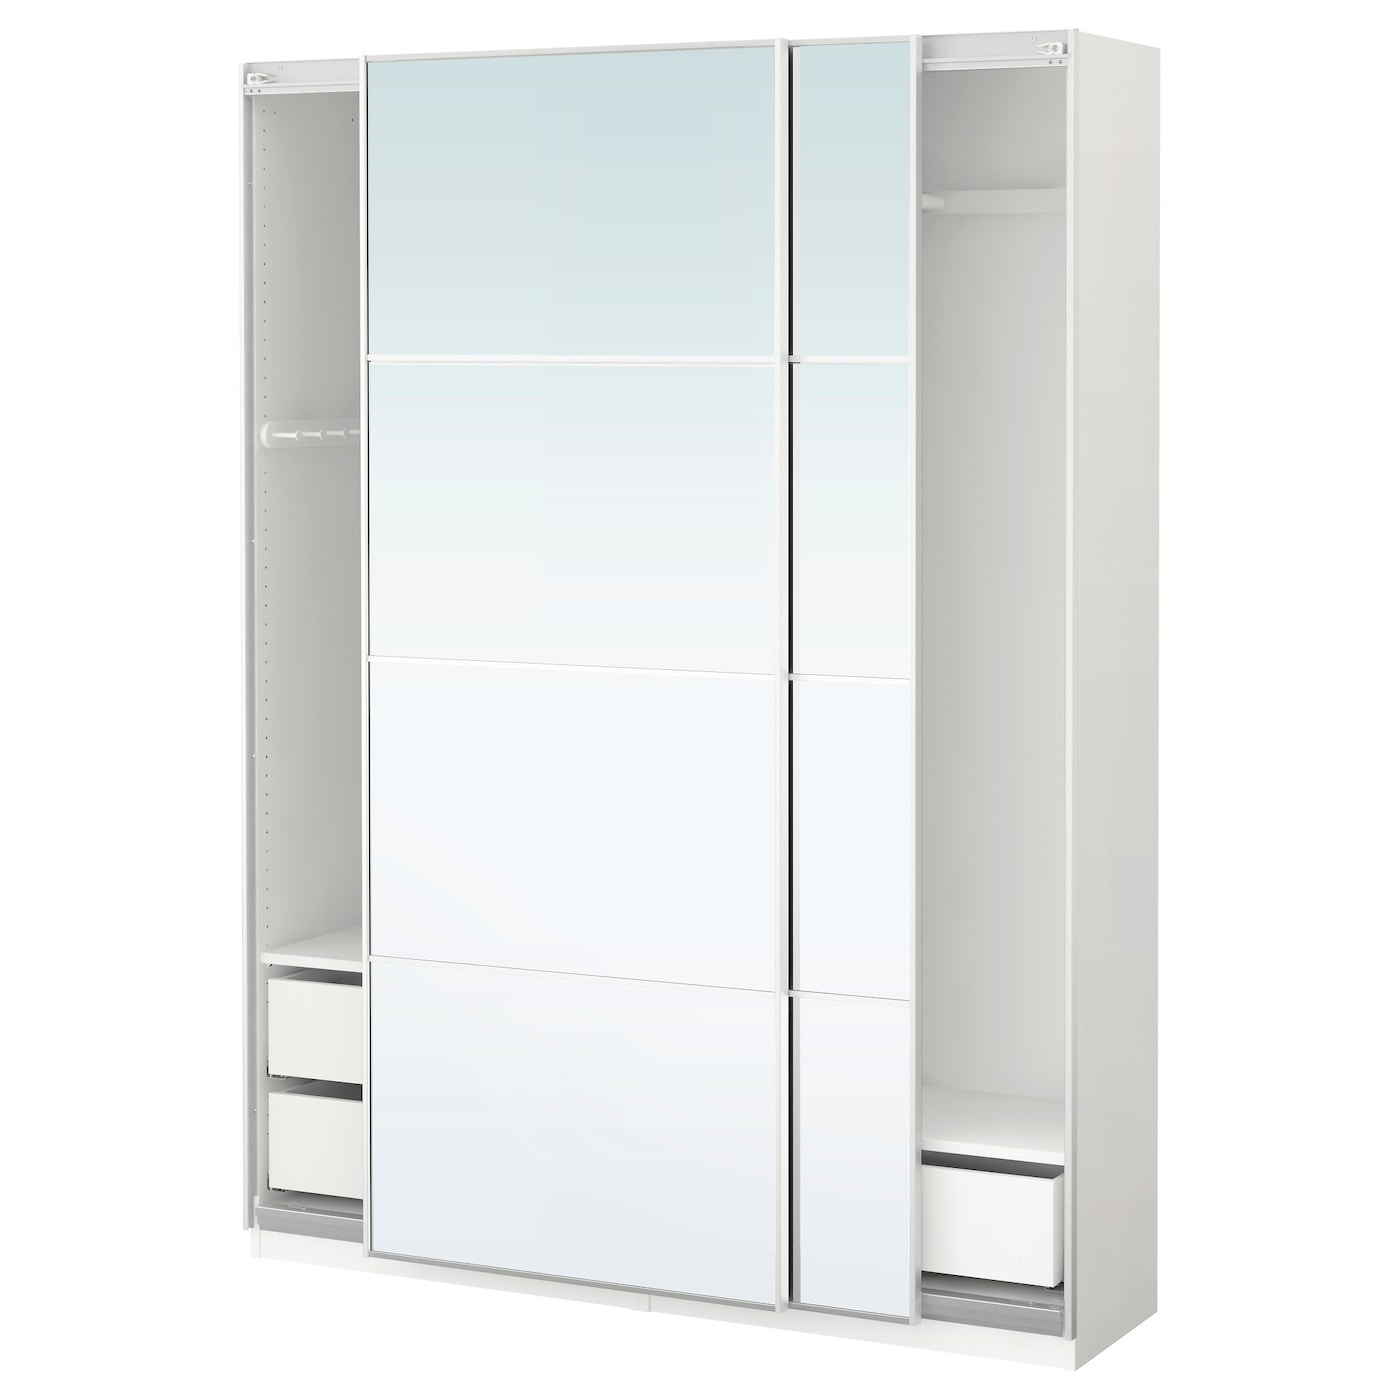 pax wardrobe white auli mirror glass 150 x 44 x 201 cm ikea. Black Bedroom Furniture Sets. Home Design Ideas